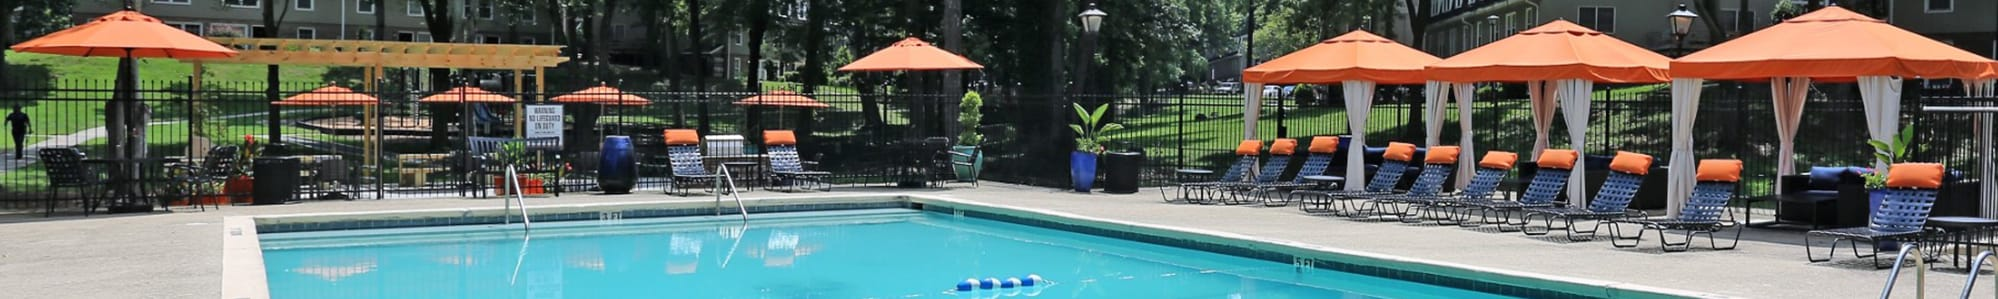 Pet friendly apartments in Greensboro